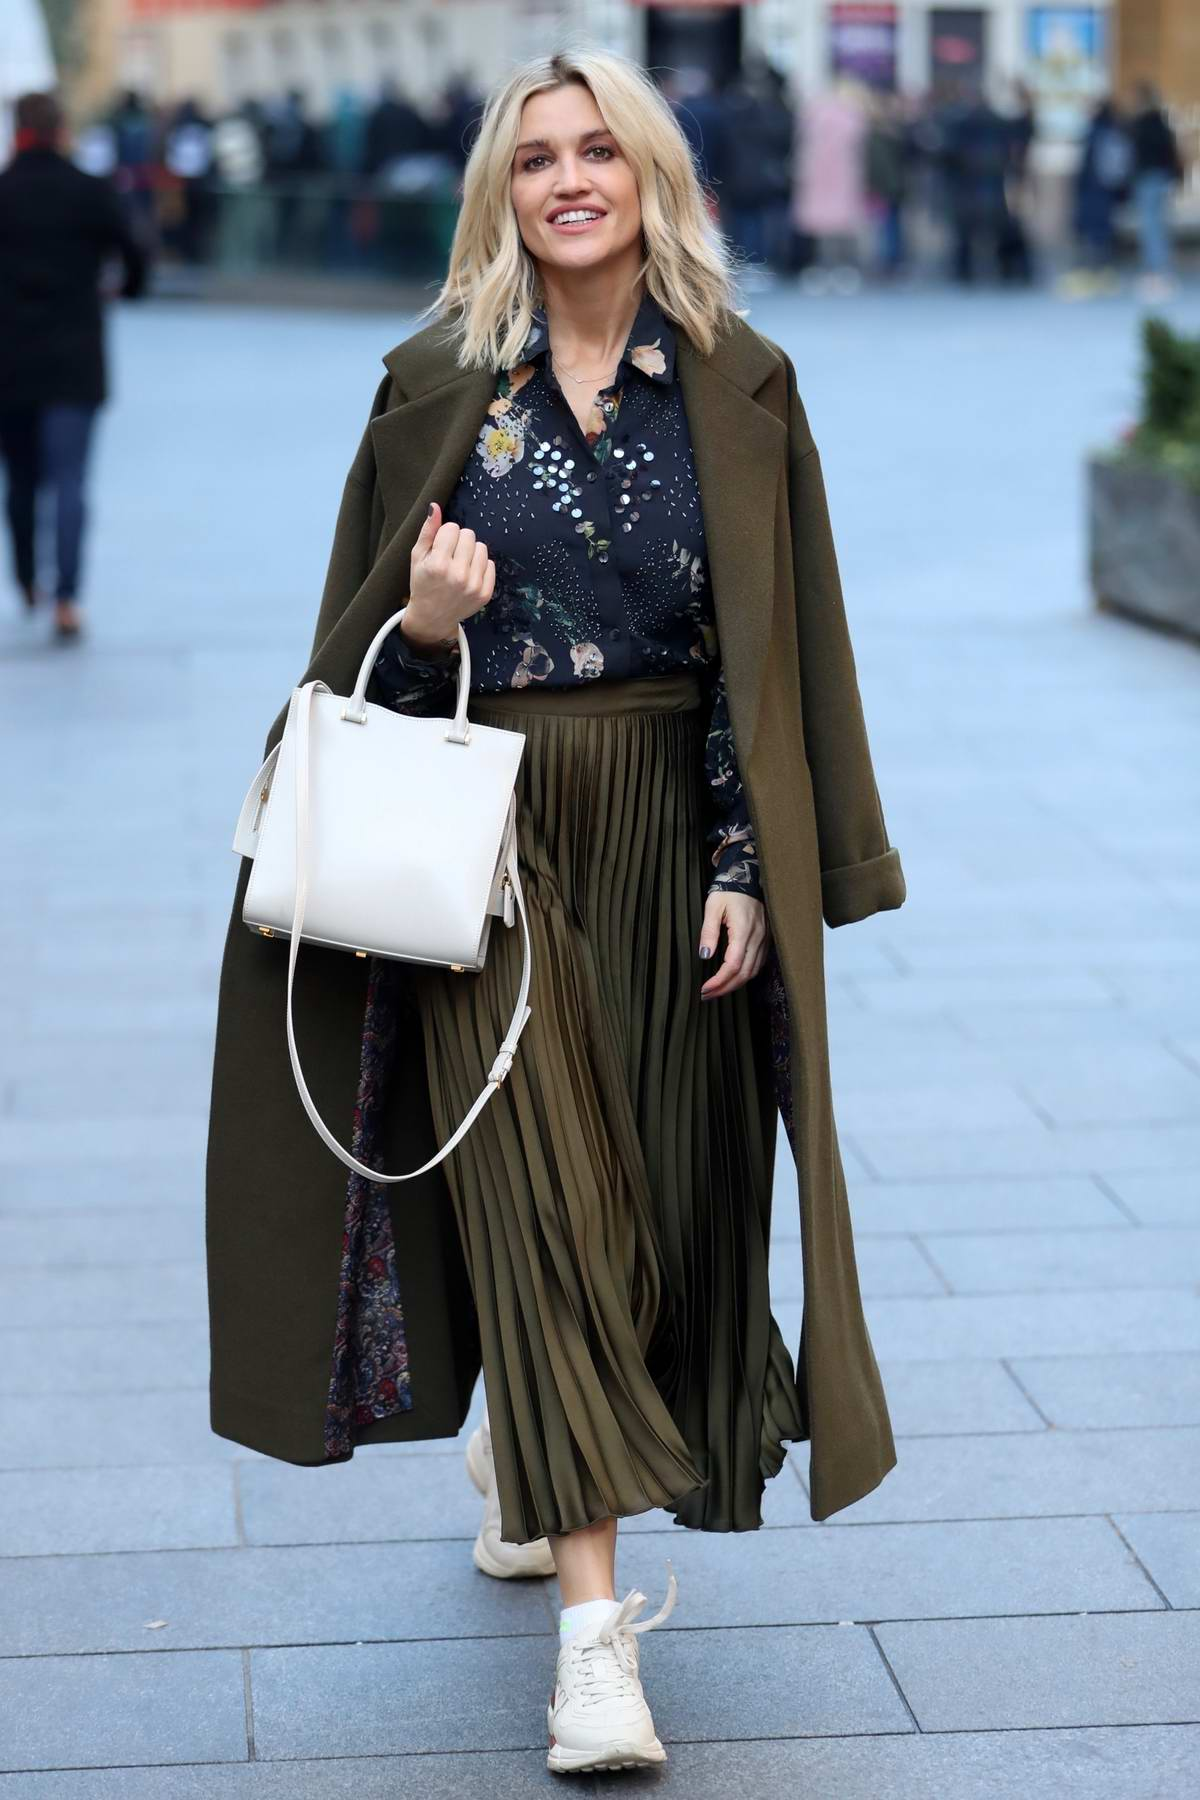 Ashley Roberts looks chic as she heads to rehearsals after her radio show on Heart FM in London, UK